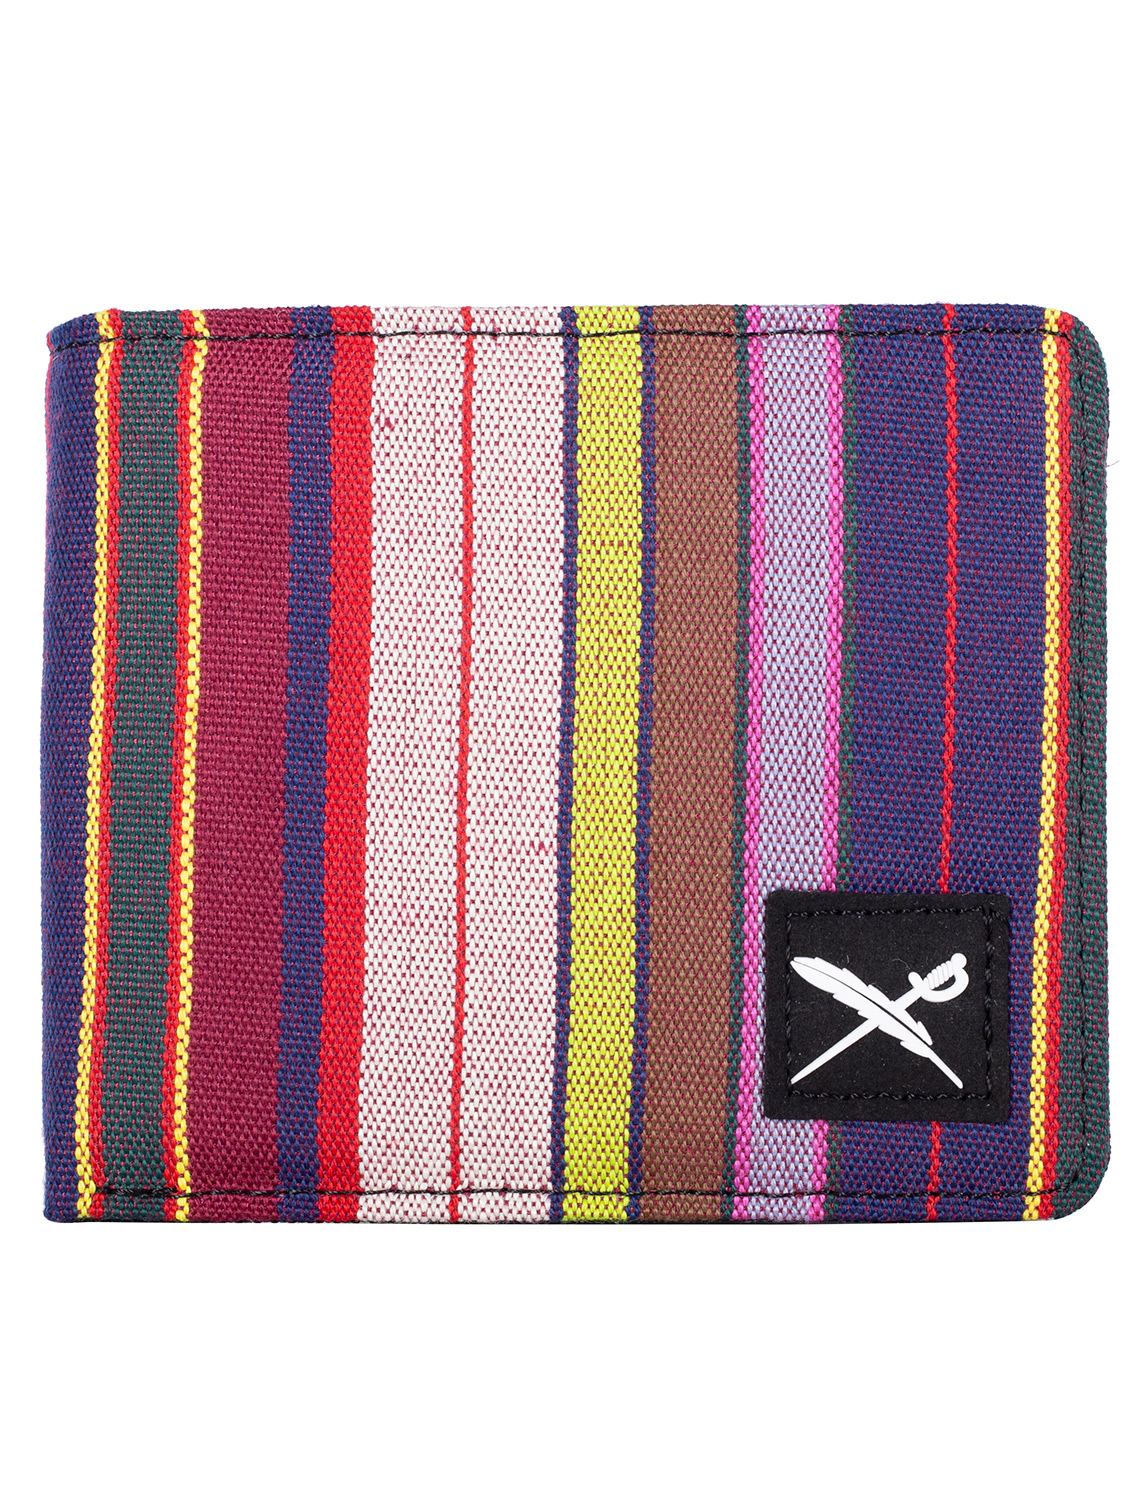 IRIE-DAILY-ETHNOTIC-WALLET-Portemonnaie-colored